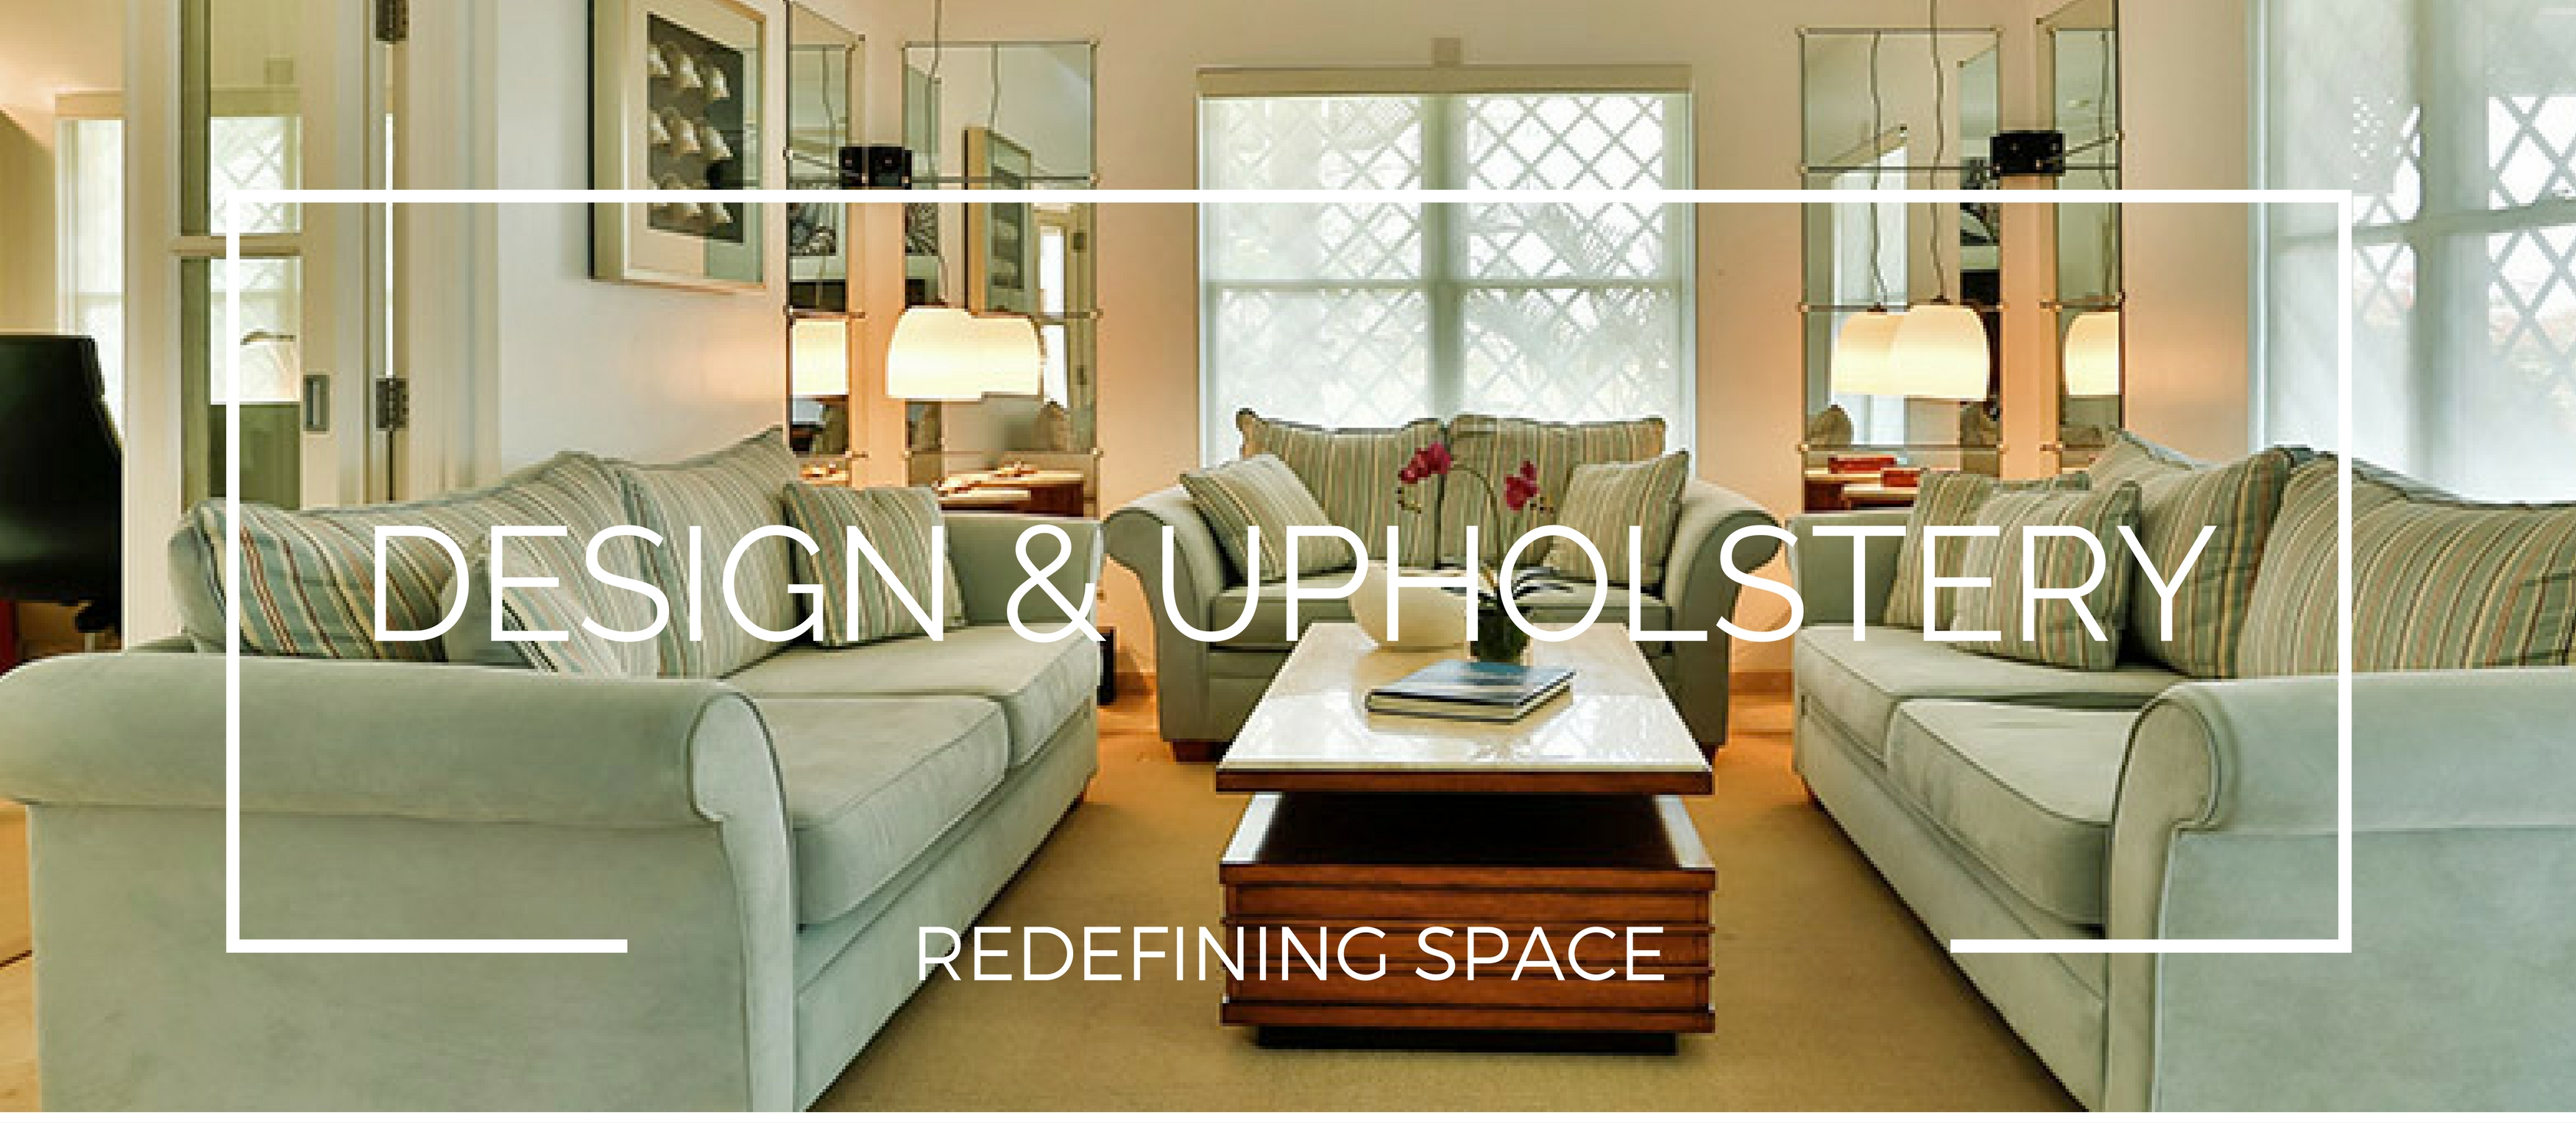 DESIGN AND UPHOLSTERY